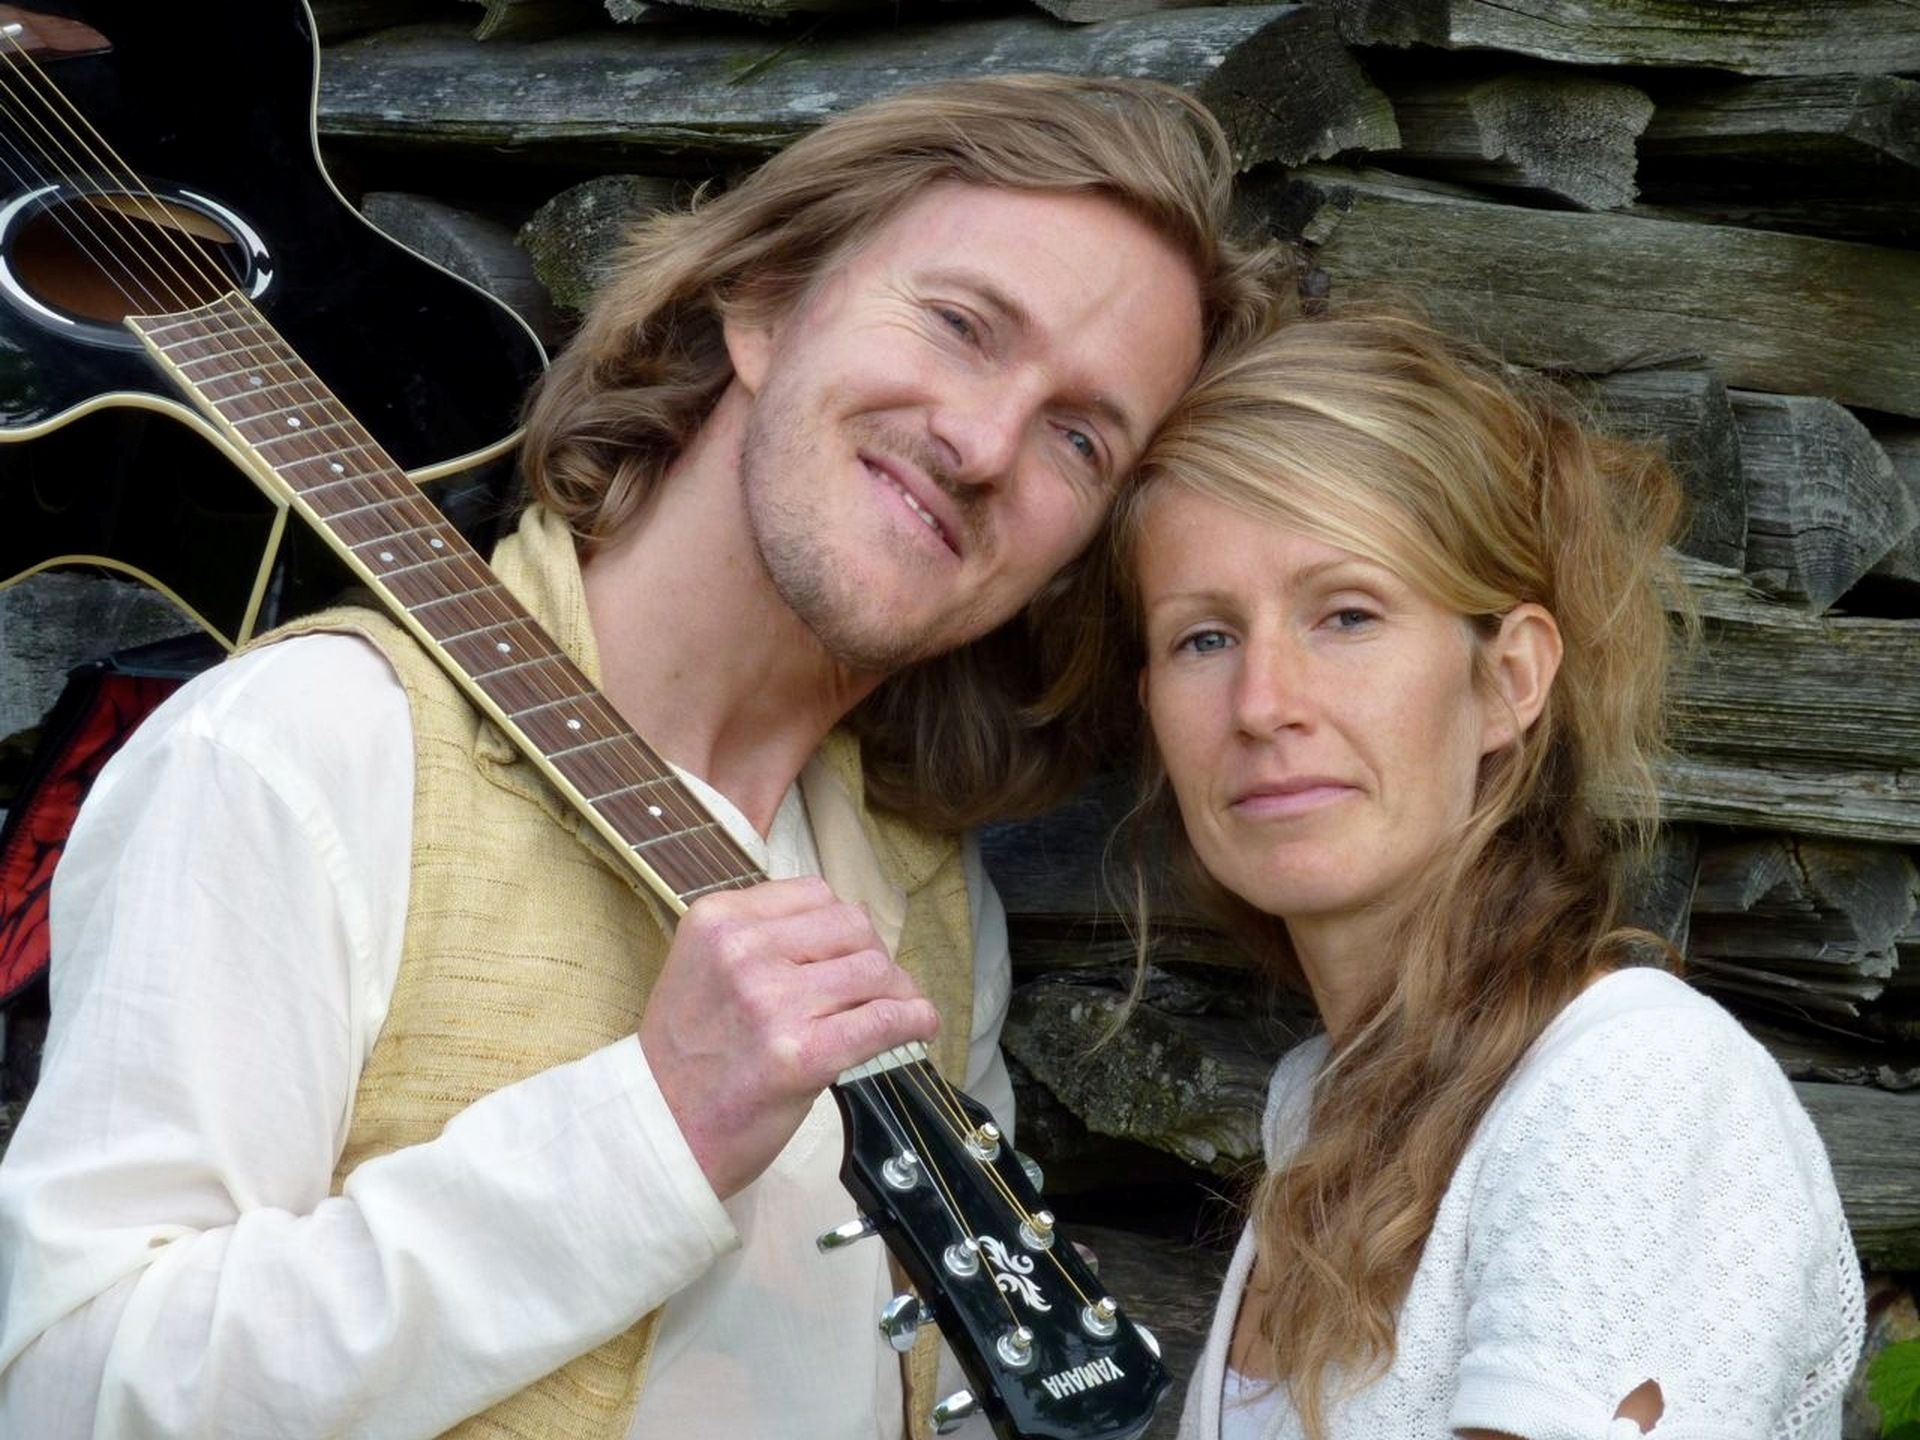 David and Katrin Mages, musicians with different styles allround the world